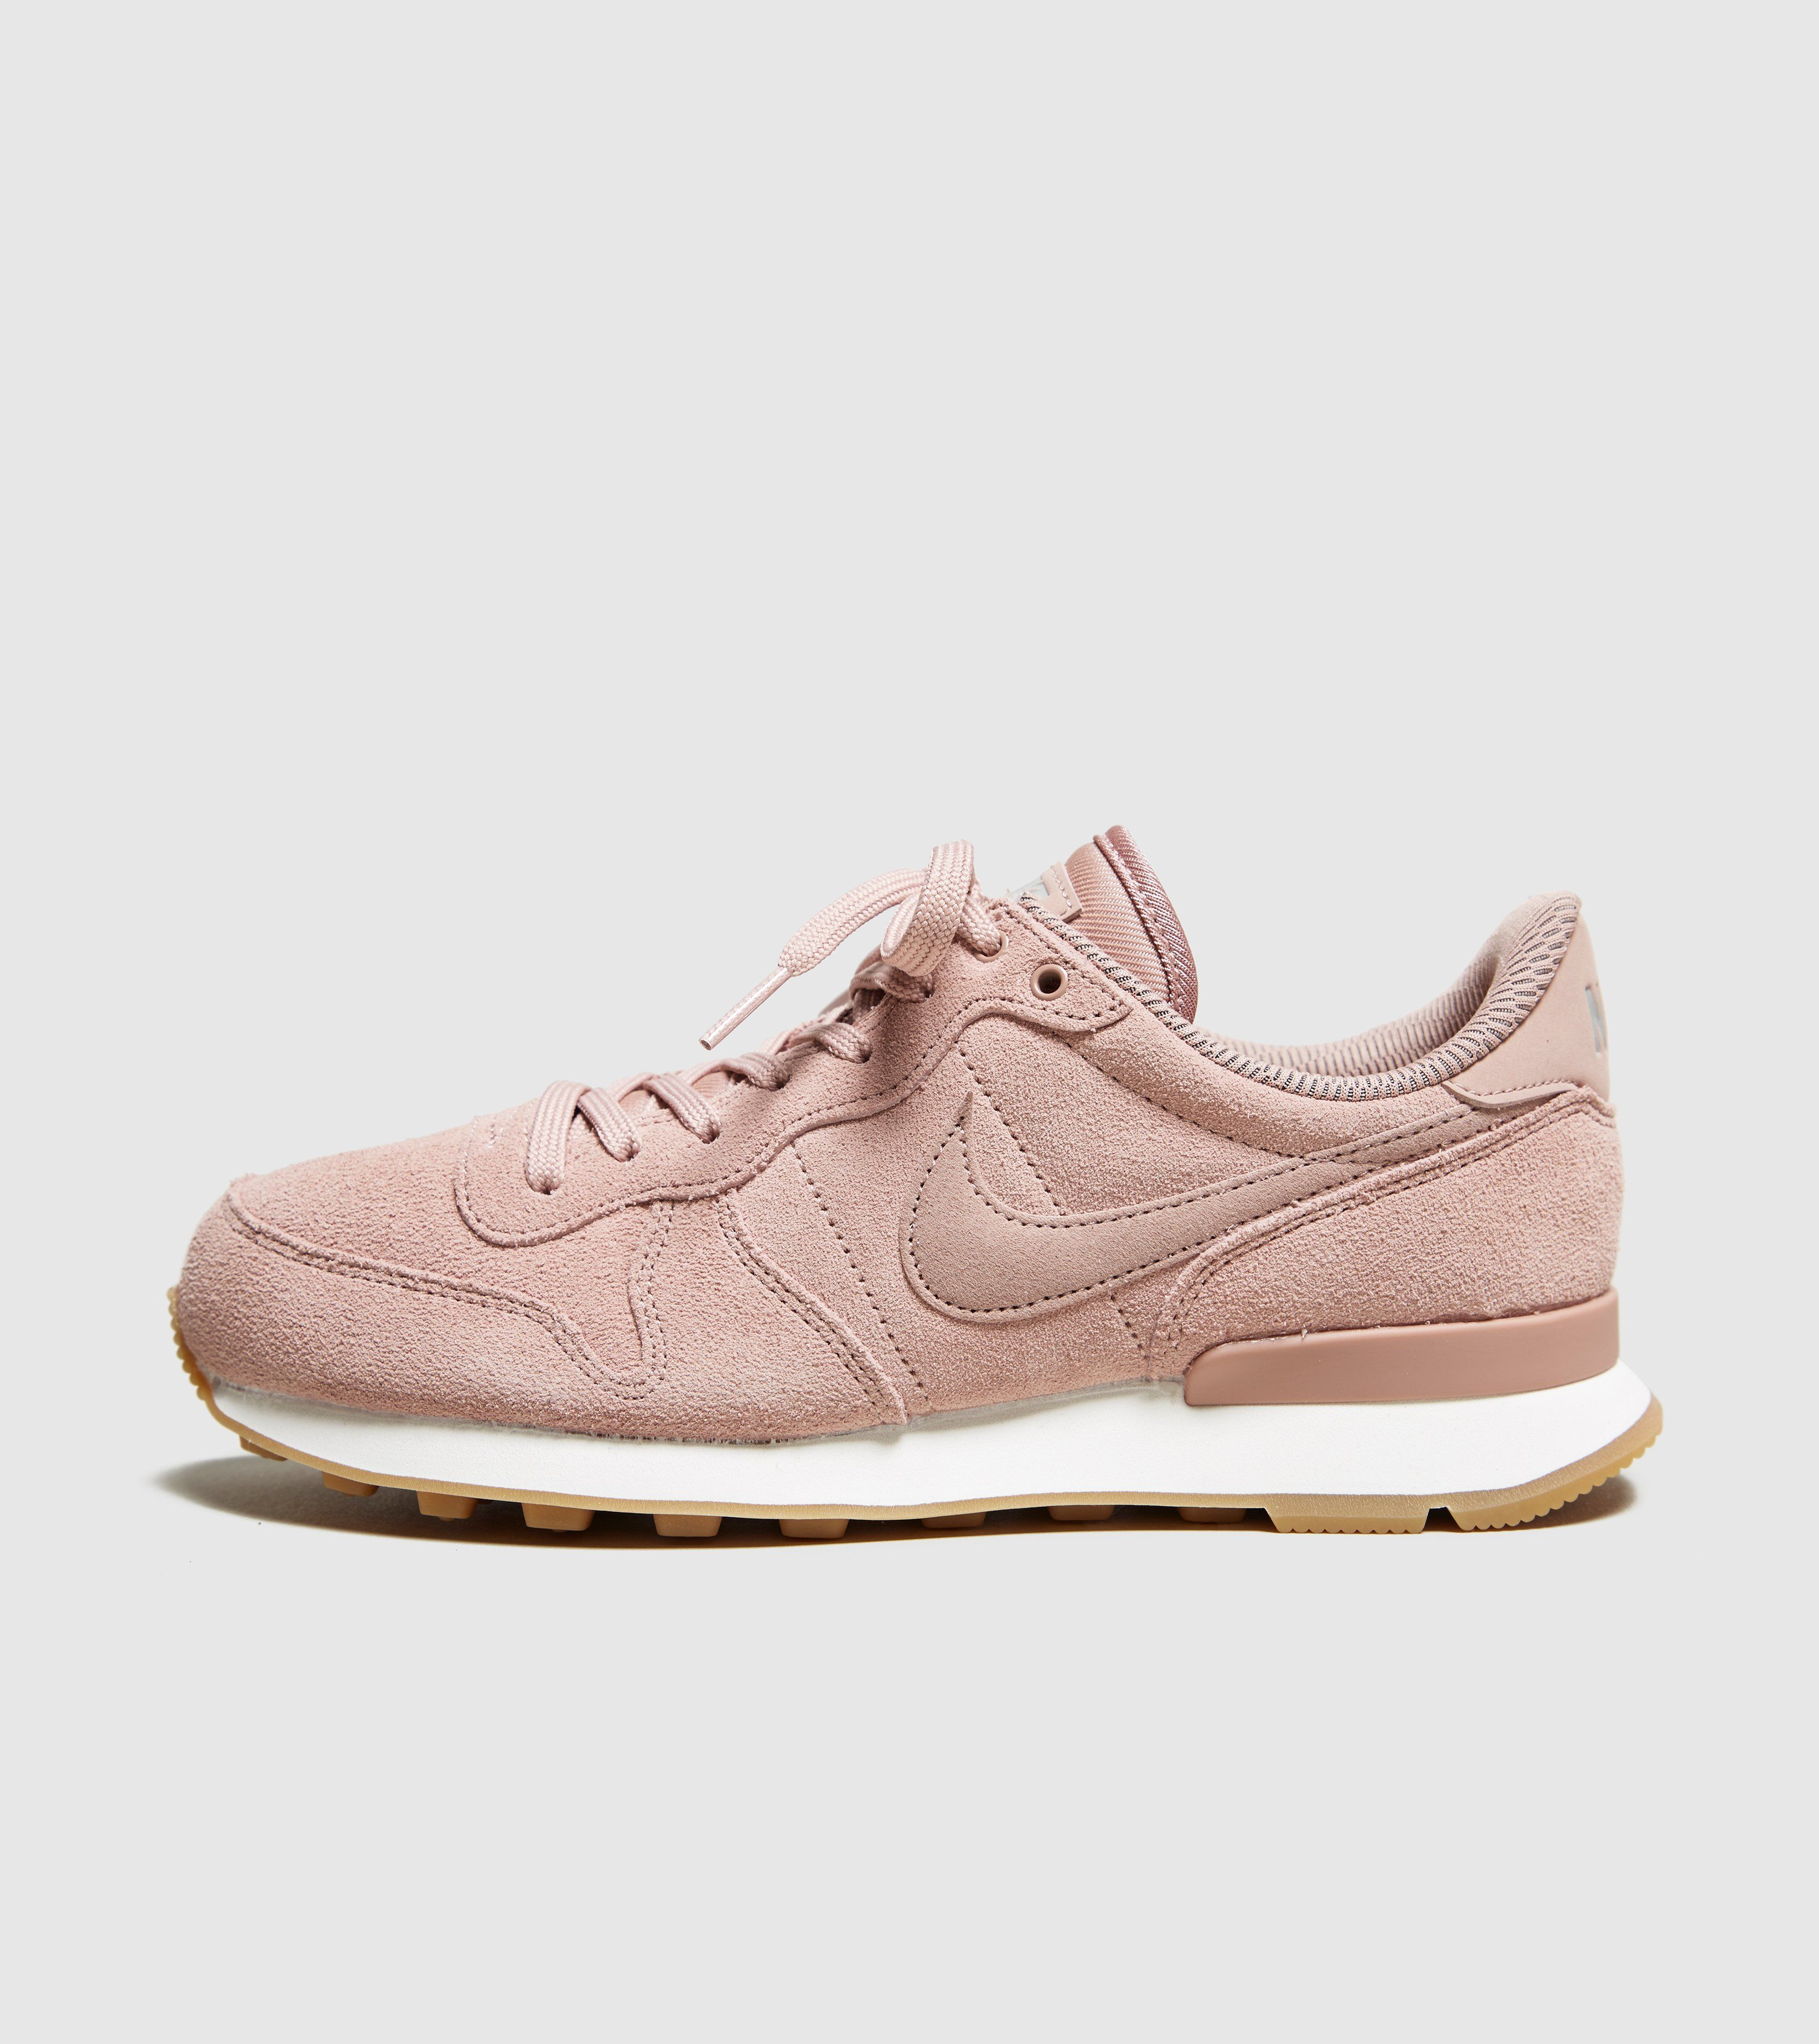 Nike Internationalist SE Women's